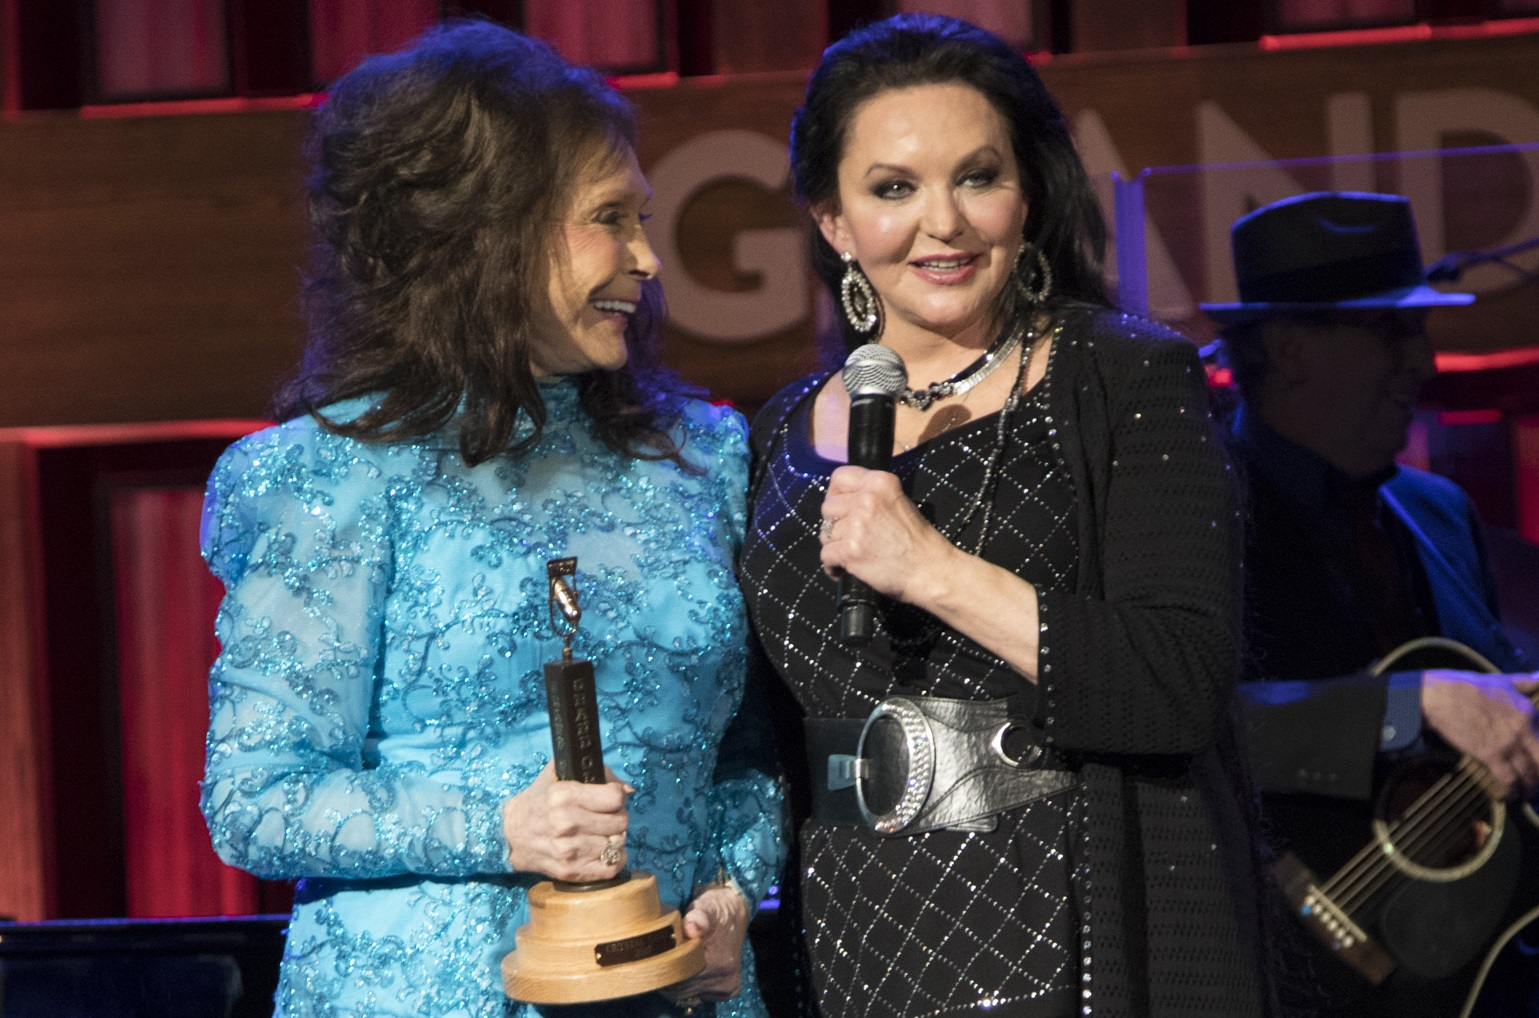 Loretta Lynn, Crystal Gayle; Photo by Chris Hollo for Grand Ole Opry